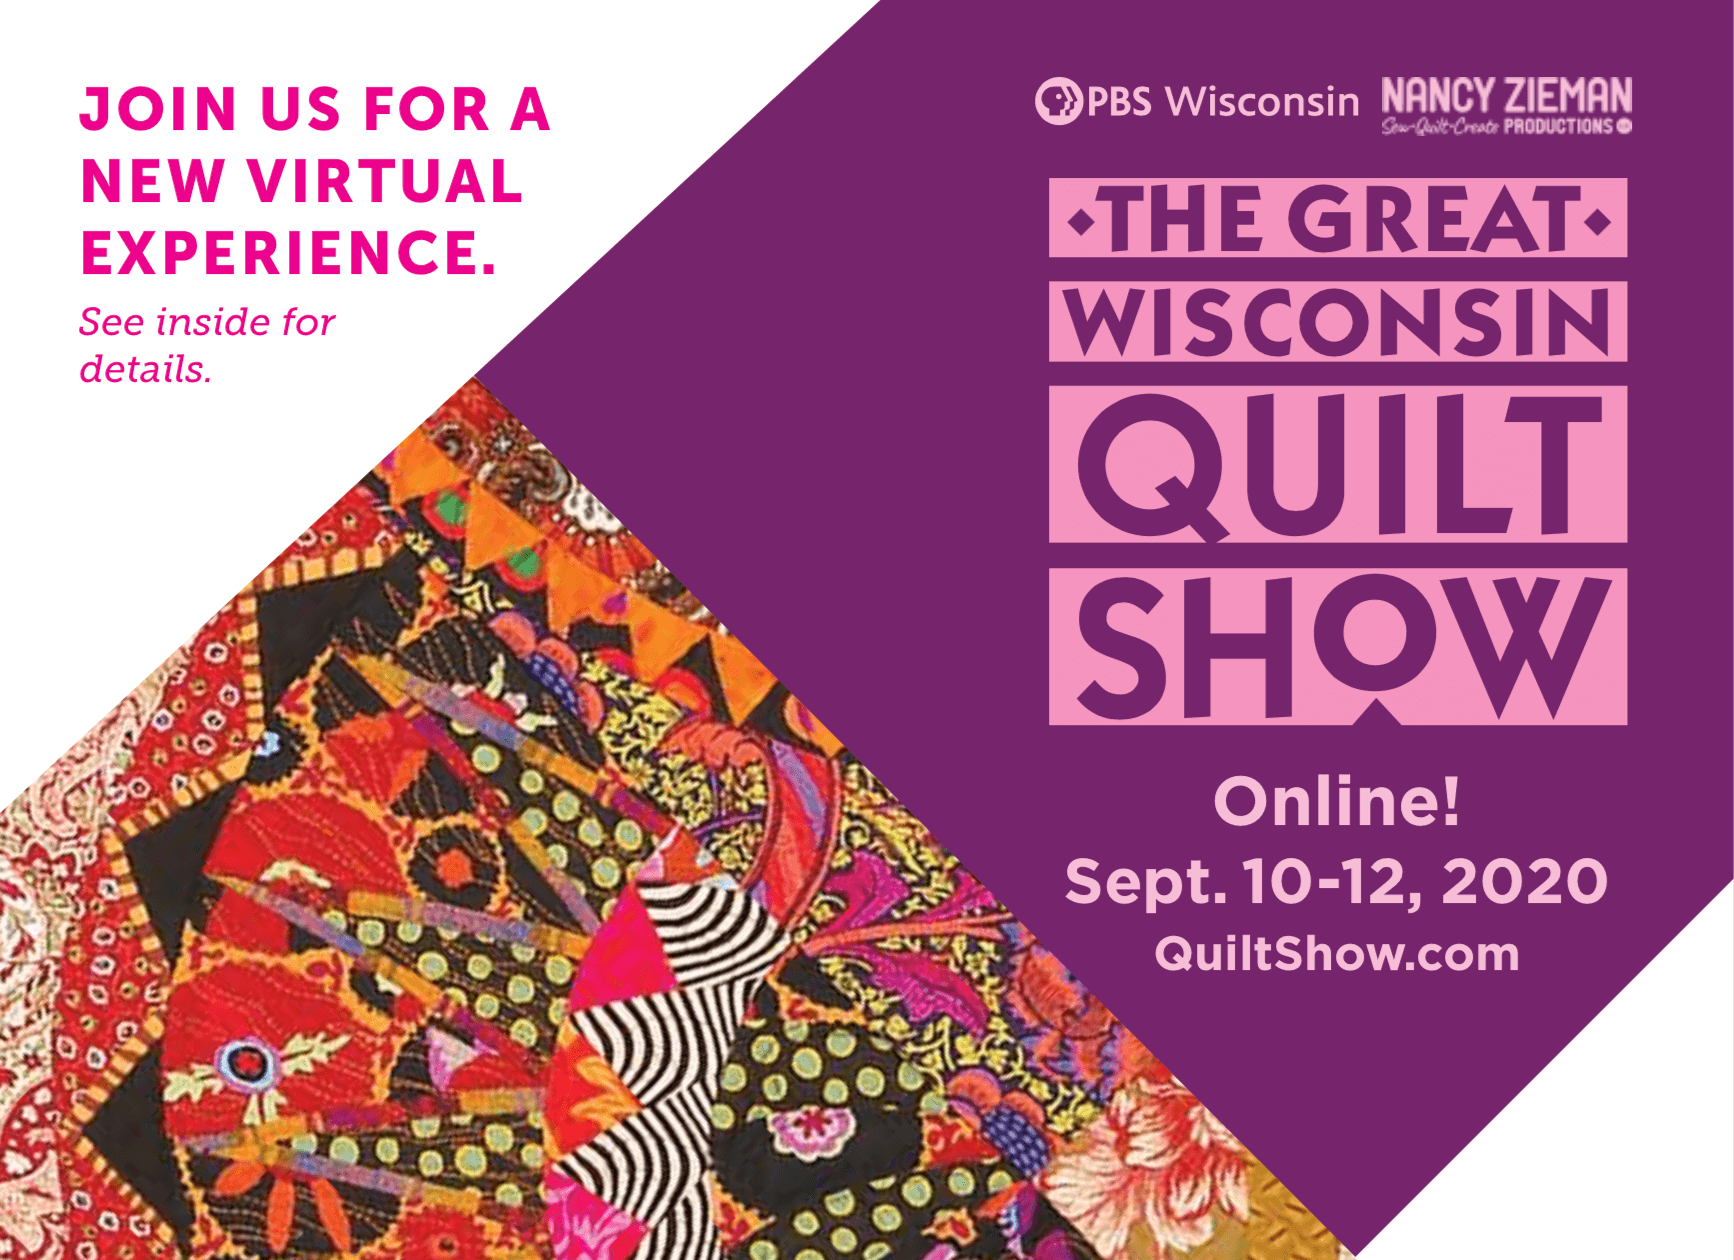 The Great Wisconsin Quilt Show in Madison Wisconsin